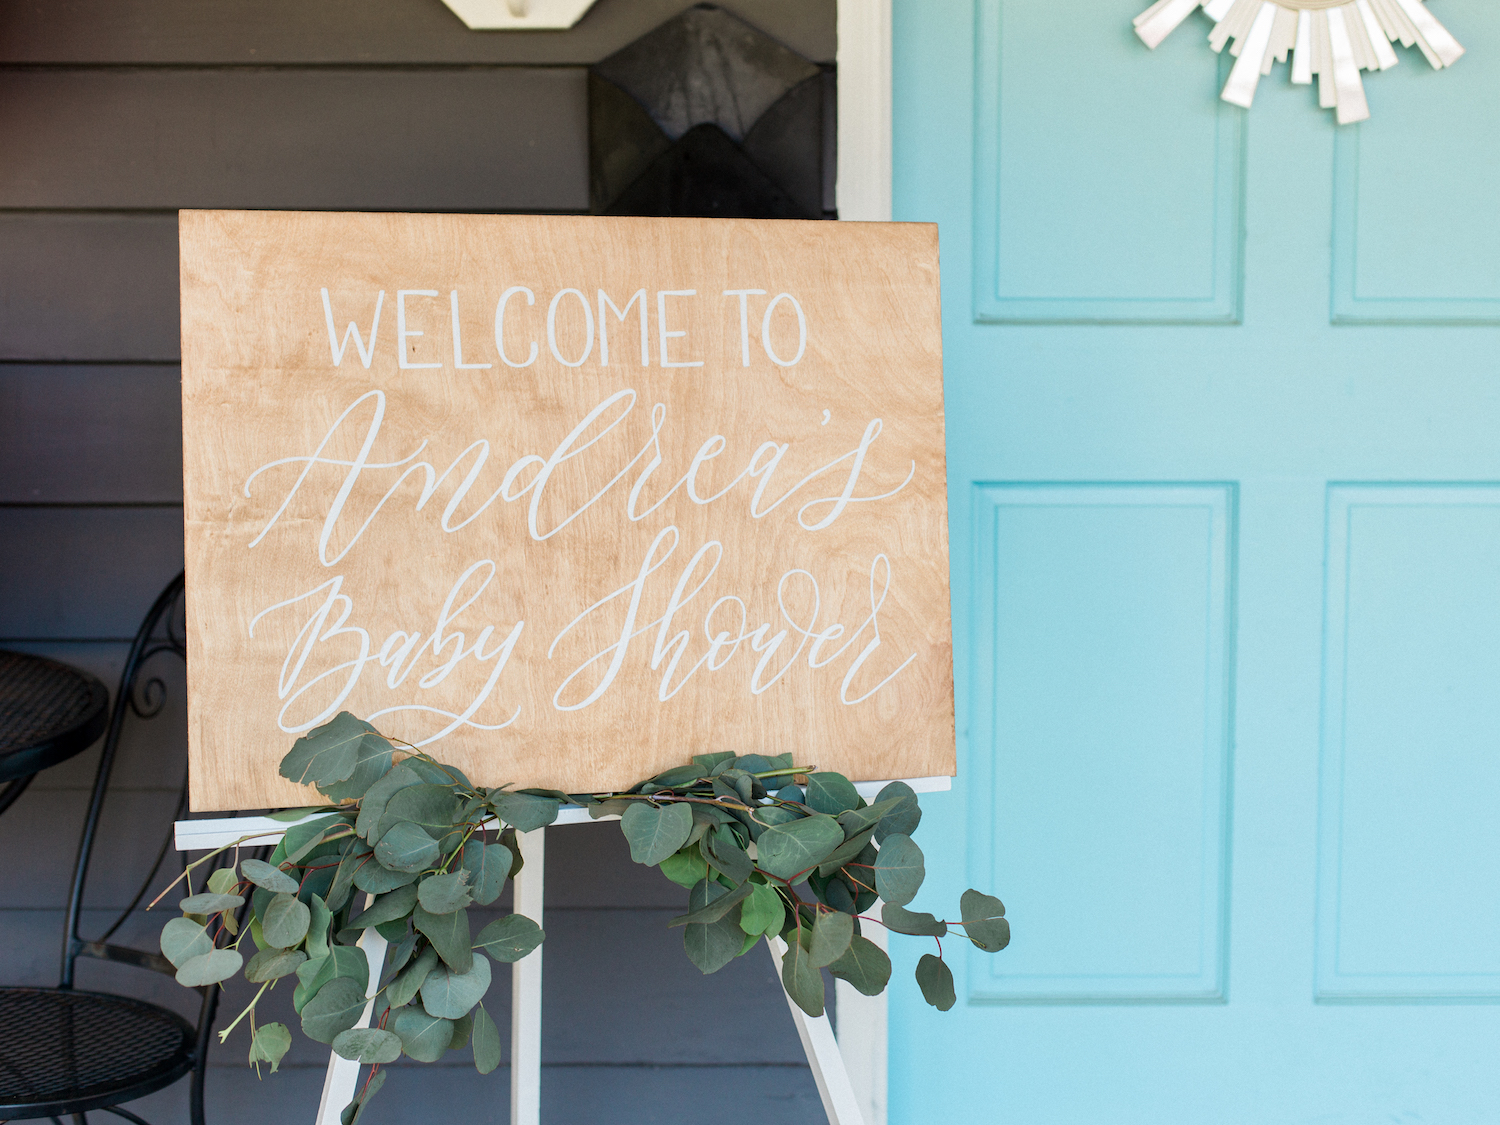 Wood calligraphy baby shower sign by ElisaAnne Calligraphy. Photography by Kesia Marie Photography Atlanta Fine Art Event Photographer